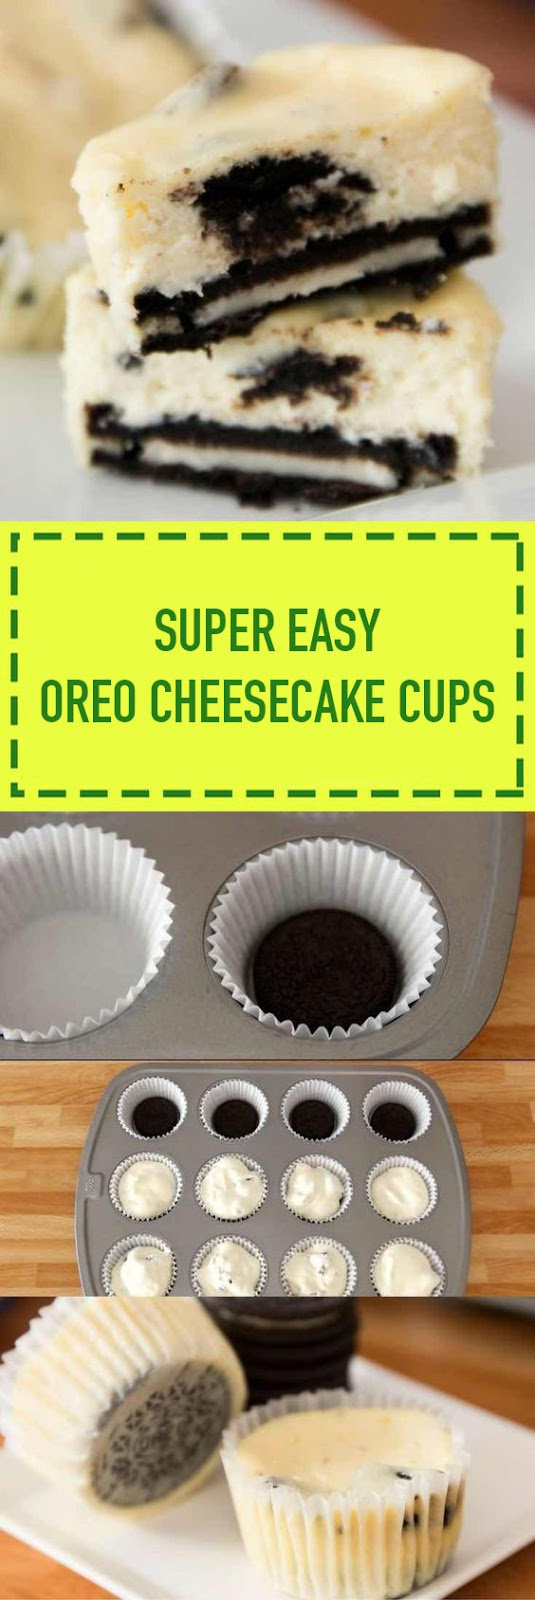 Oreo Cheesecake Cups